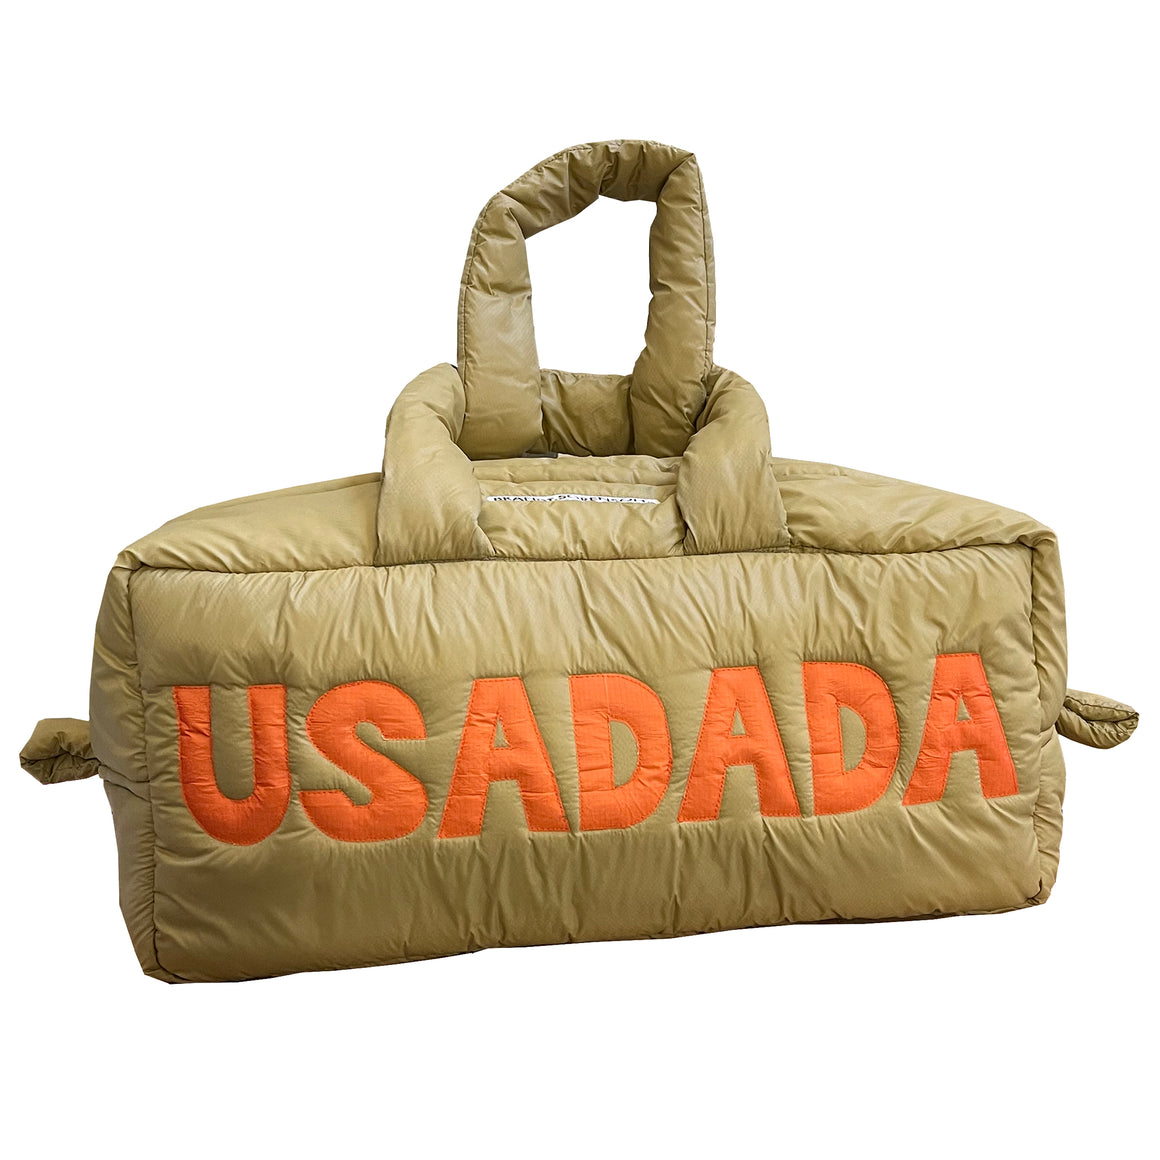 USADADA™ PUFF MONEY BAG